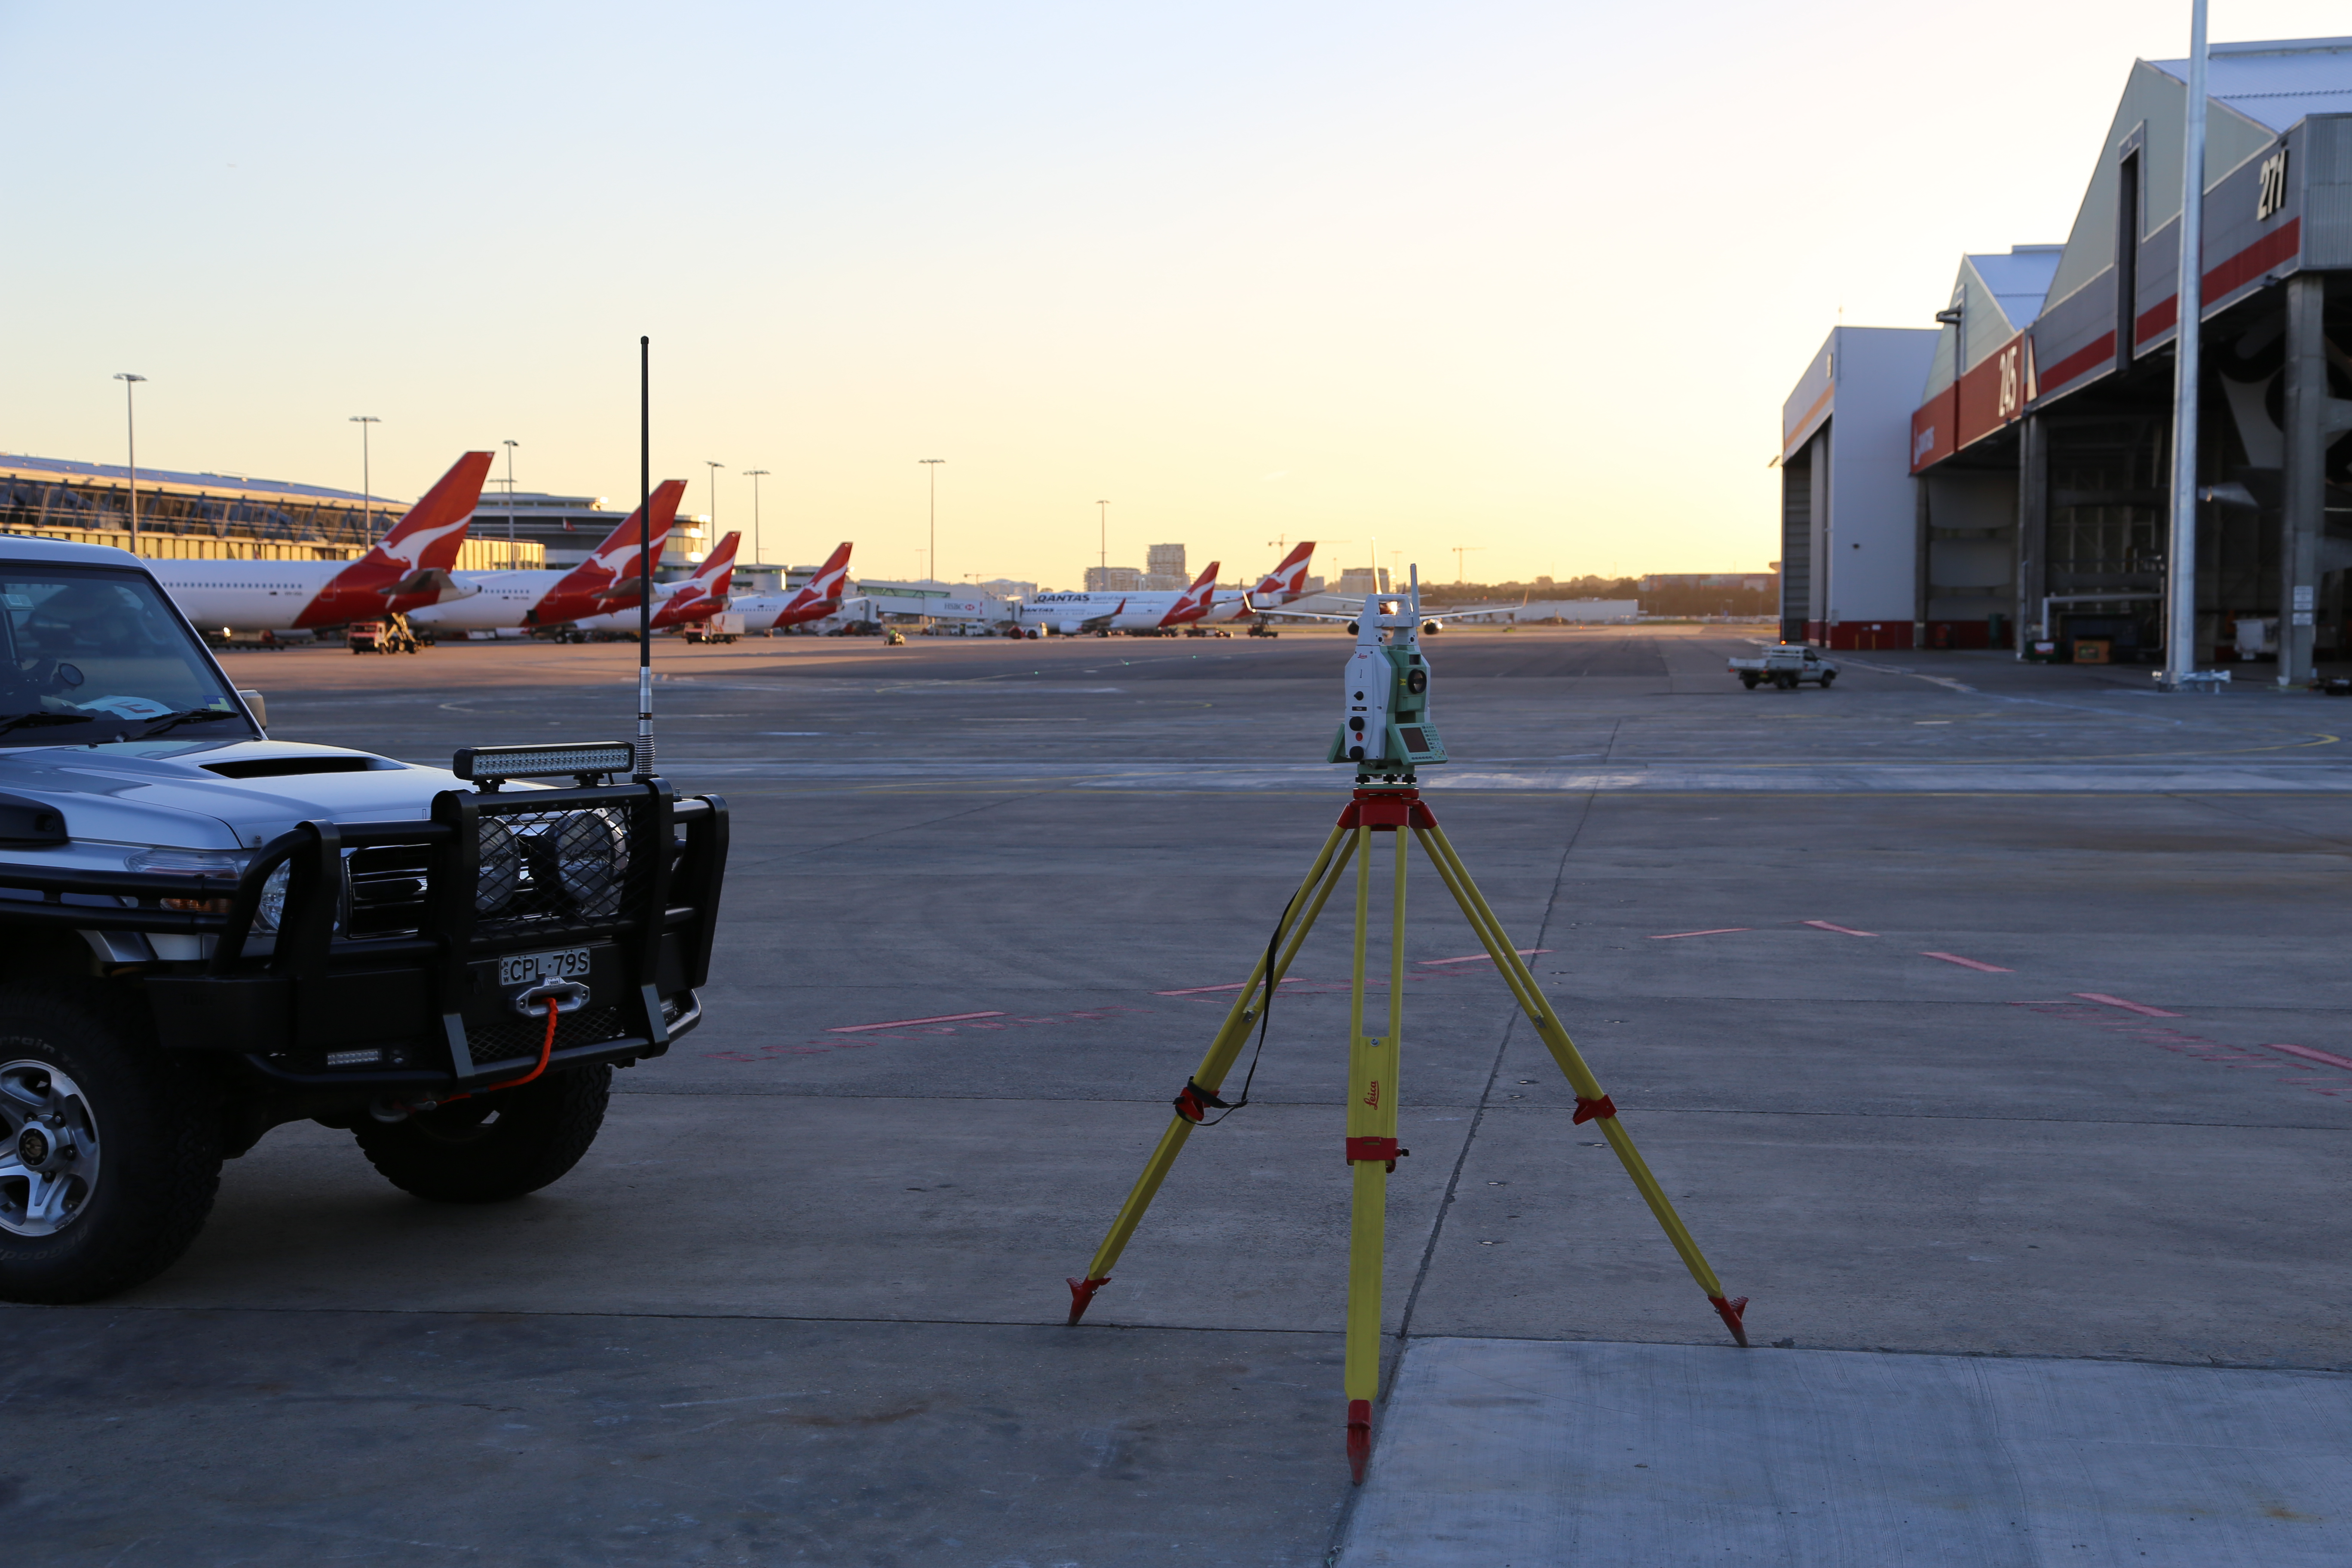 Airport Surveying Services Cads